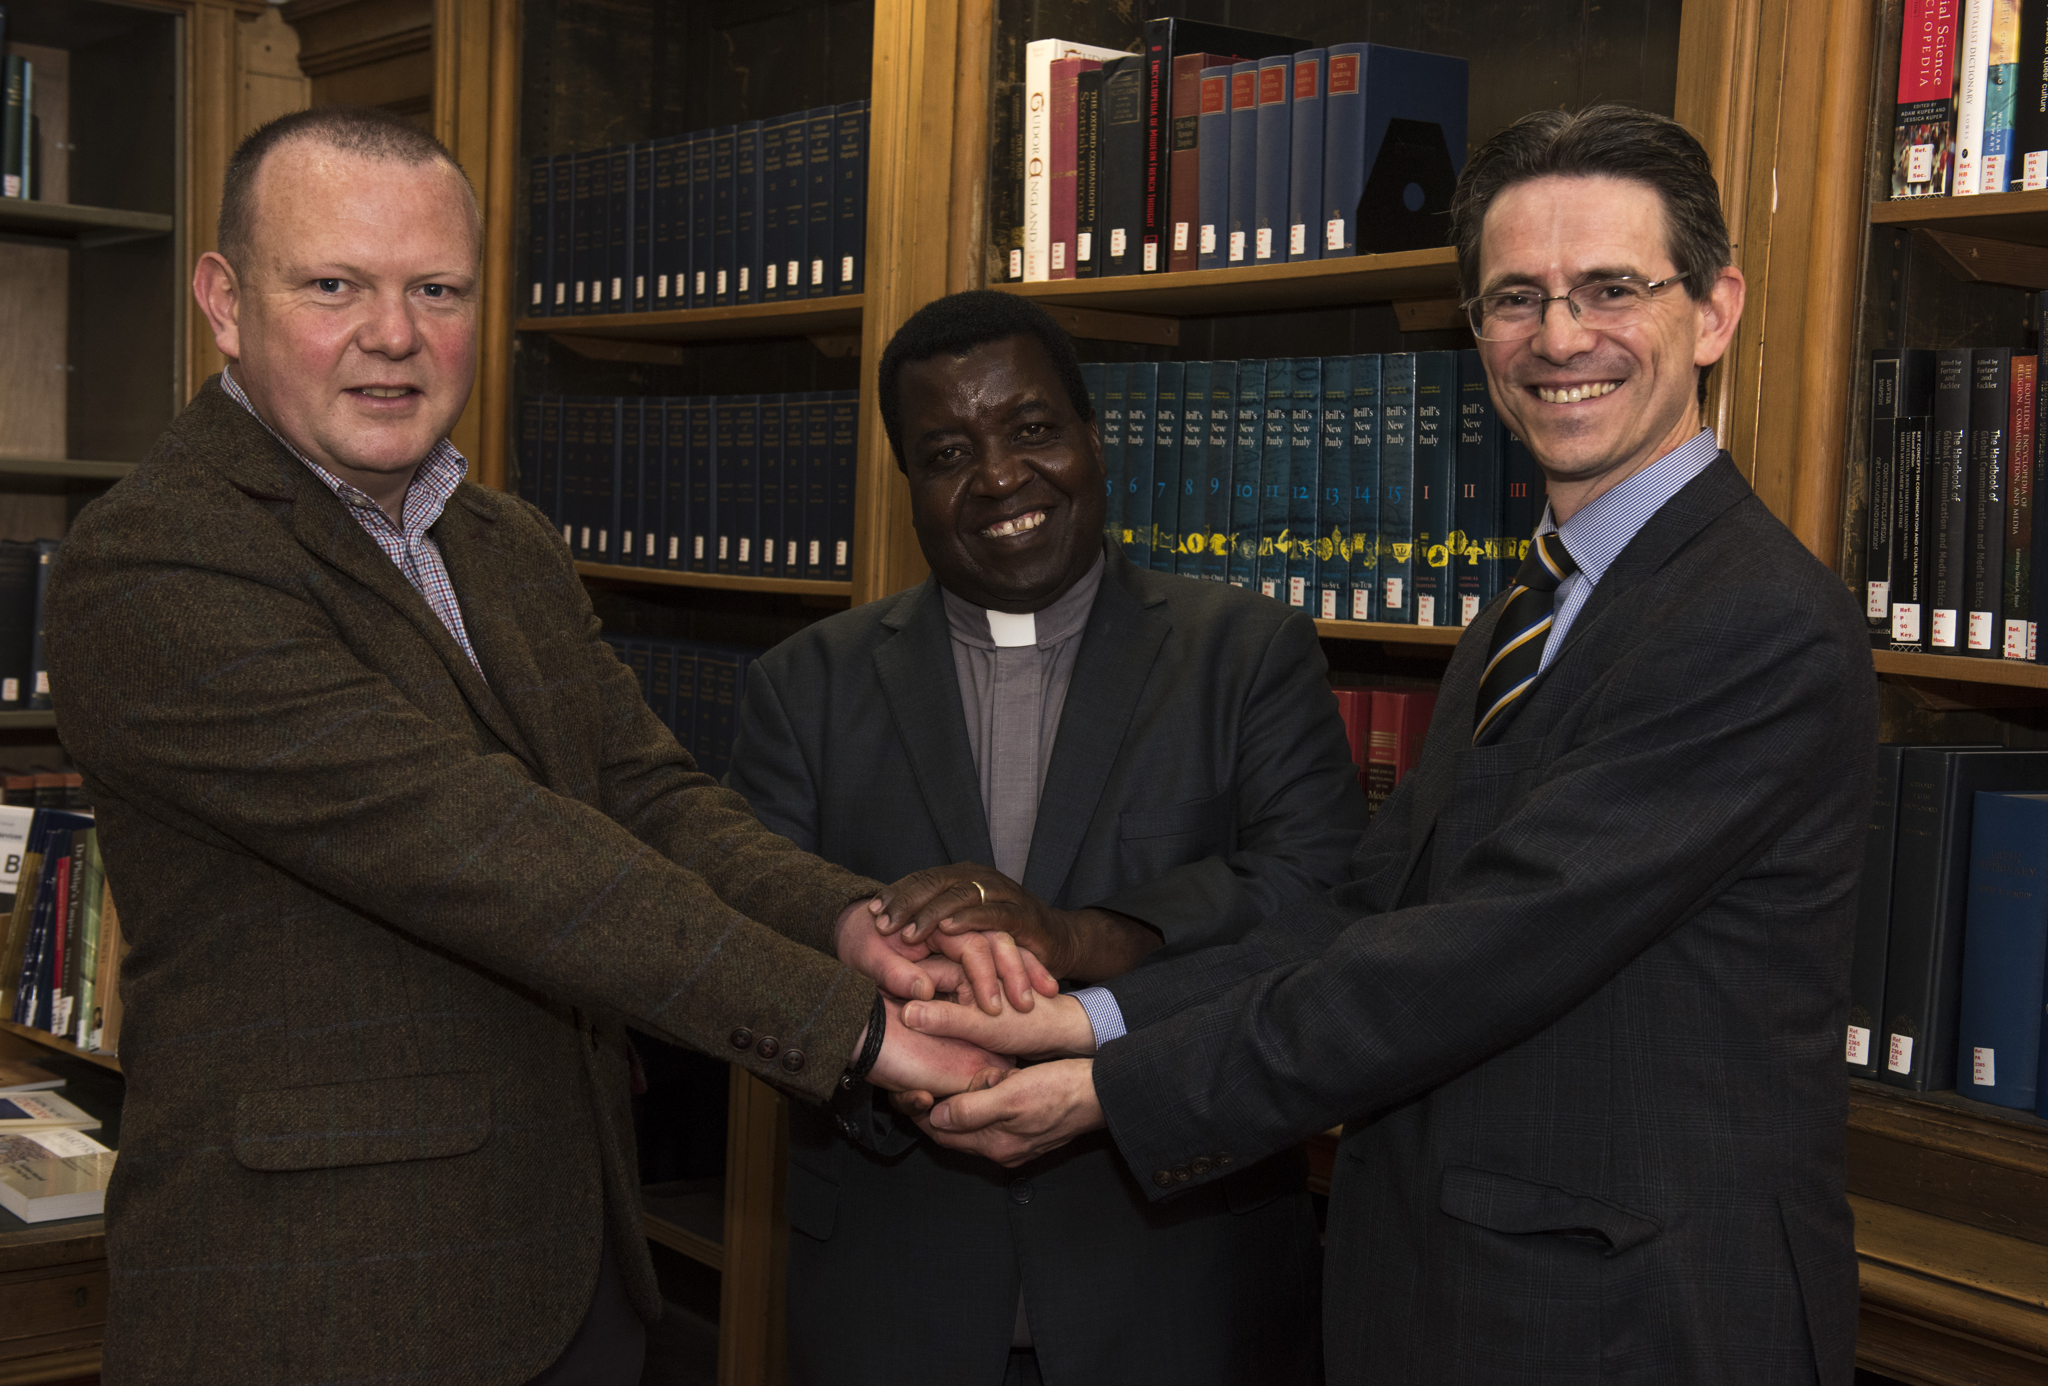 Monday 22nd of May 2017: General Assembly of the Church of Scotland. Day Three: Left to Right - Rev Dr Ken Jeffrey of Aberdeen University, Rev Alex Benson Maulana, Rev George Cowie of South Holburn Parish Church Aberdeen.